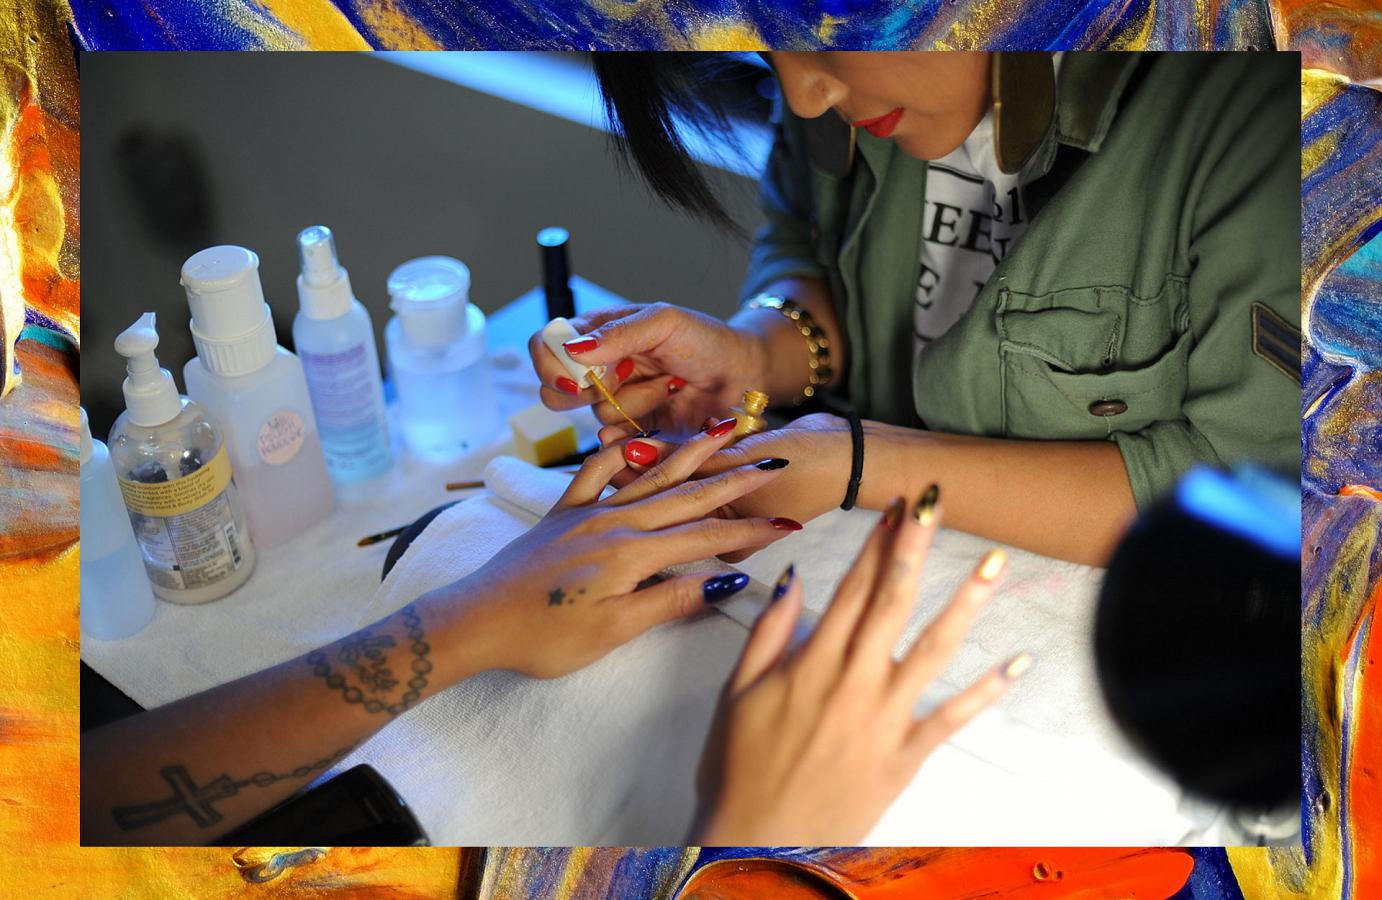 Steph Urmeneta Shines with High End Nail Art at Haus of Lacquer